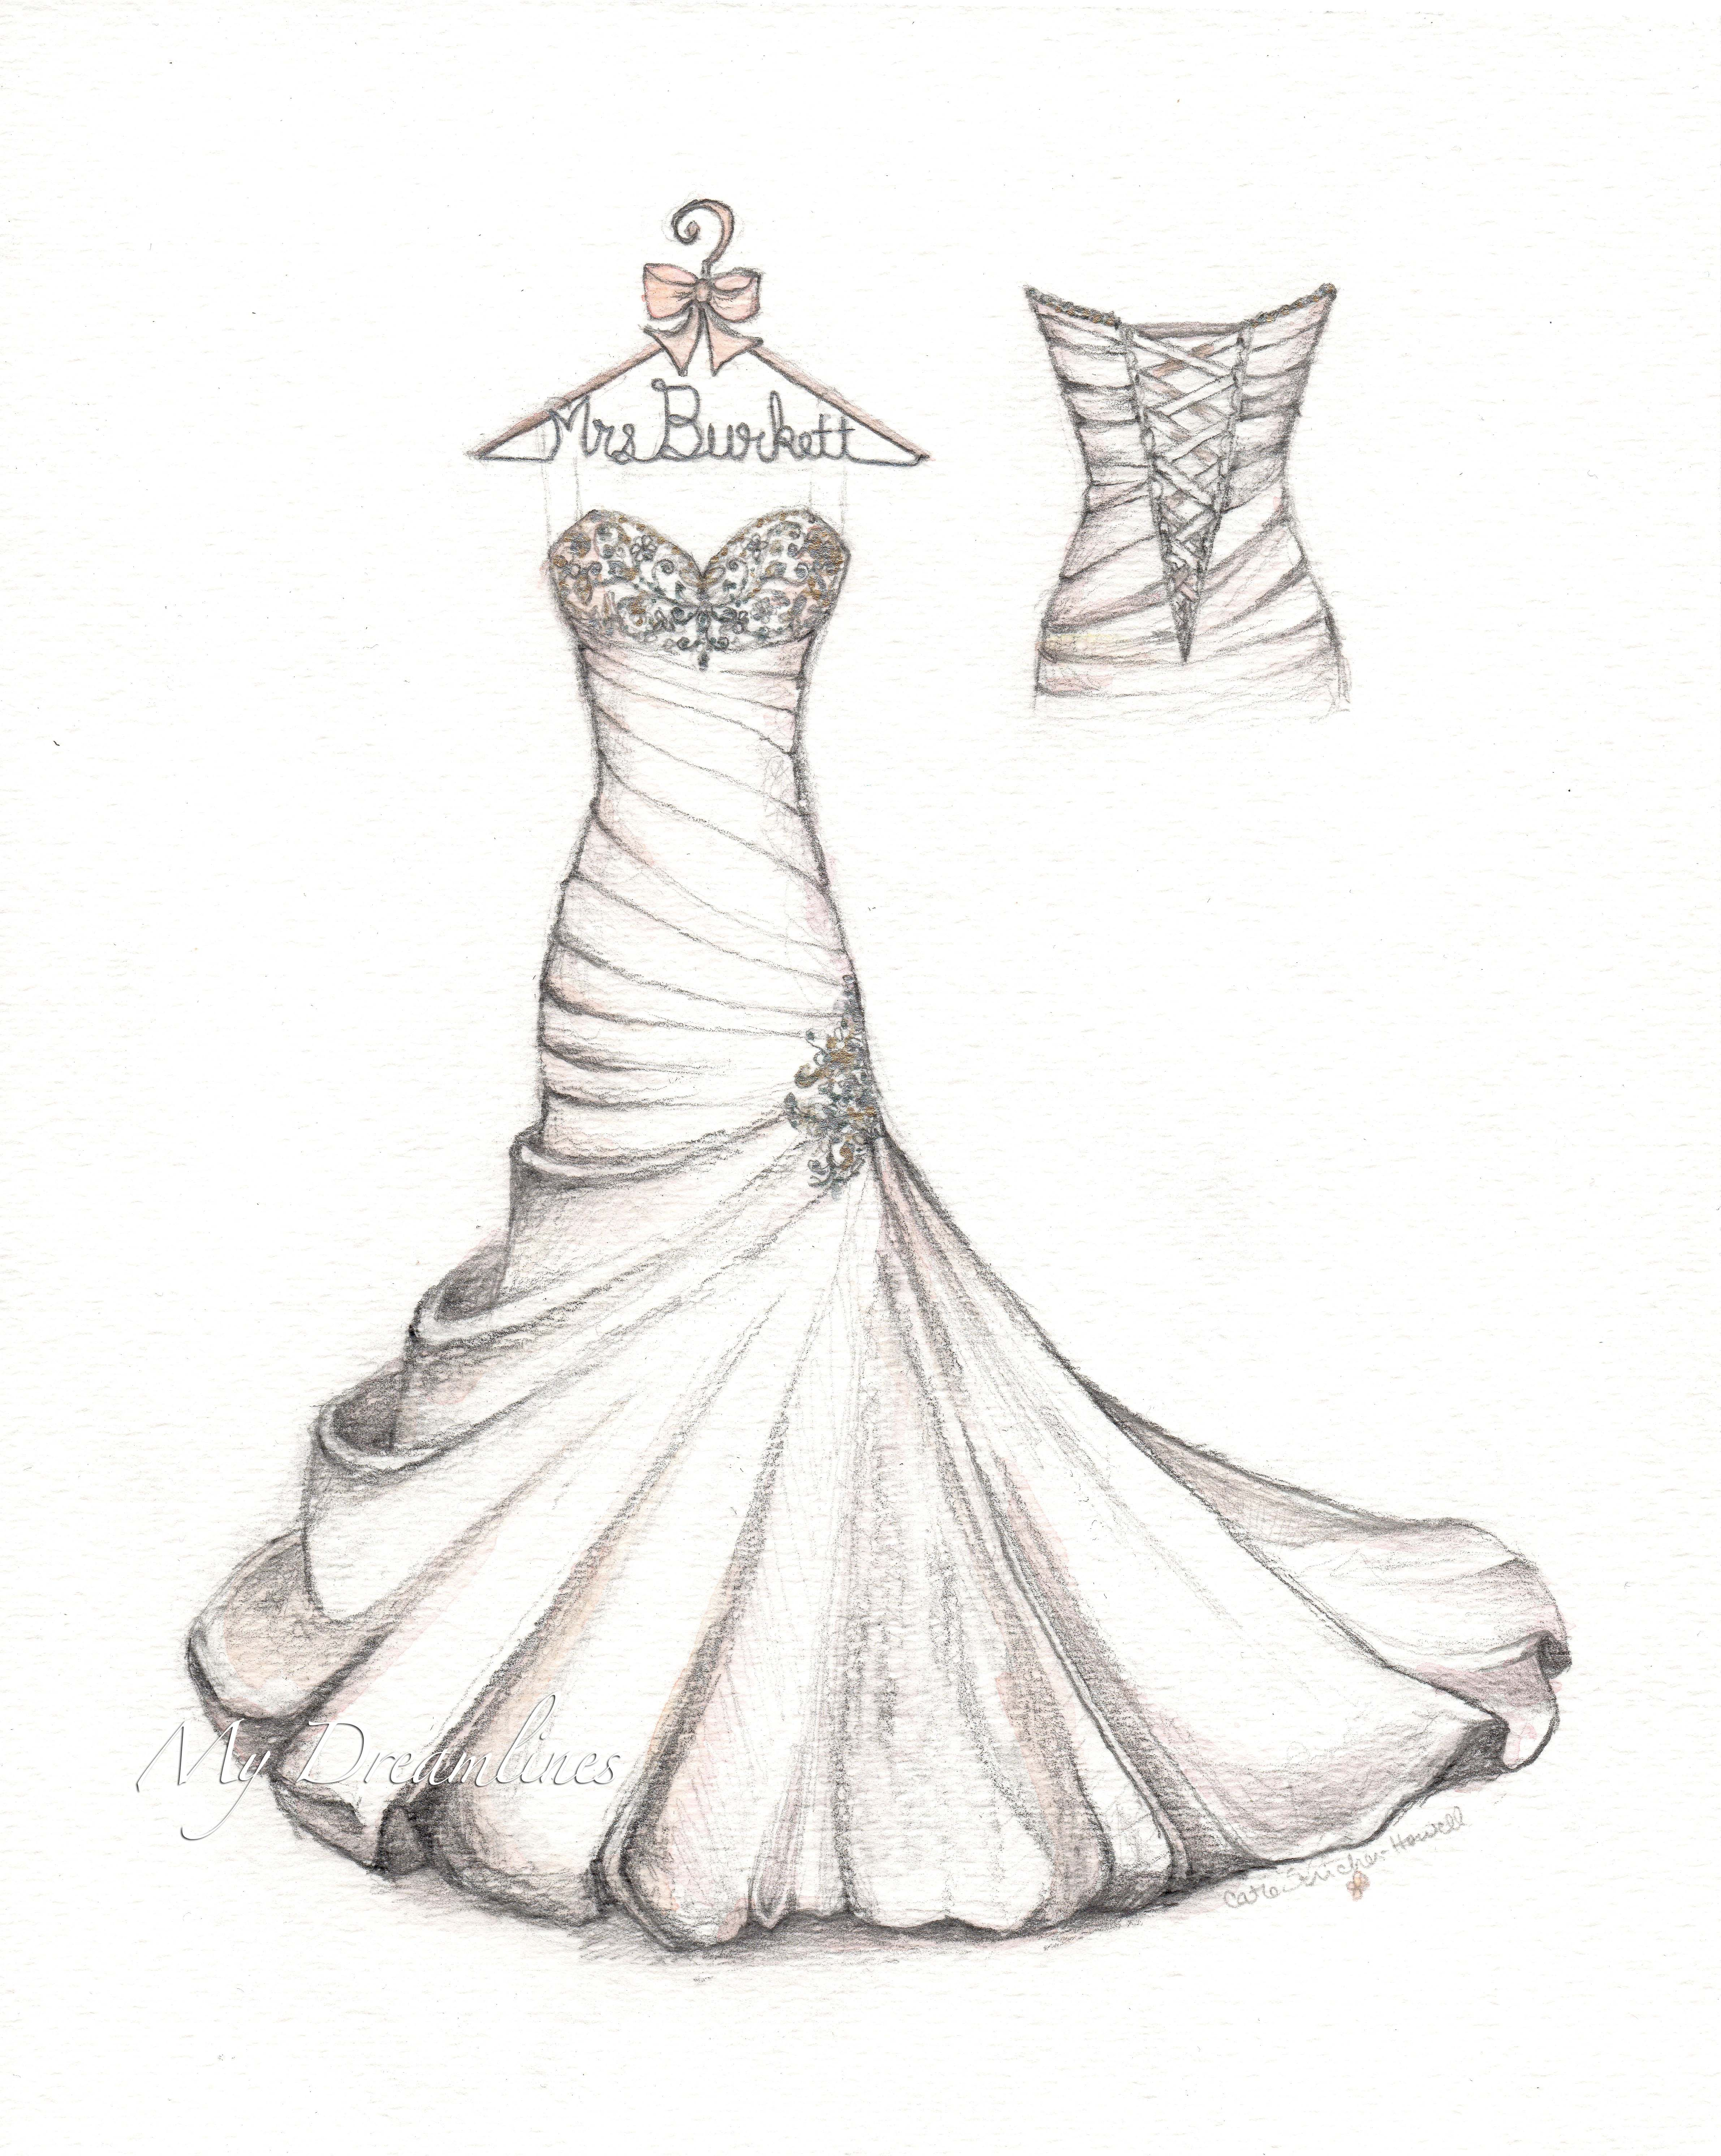 85e142e0b87 Wedding dress sketch for your first anniversary. Satin gown with bubble hem  and crystals. Personalized hanger and small back. Sketch by Catie ...